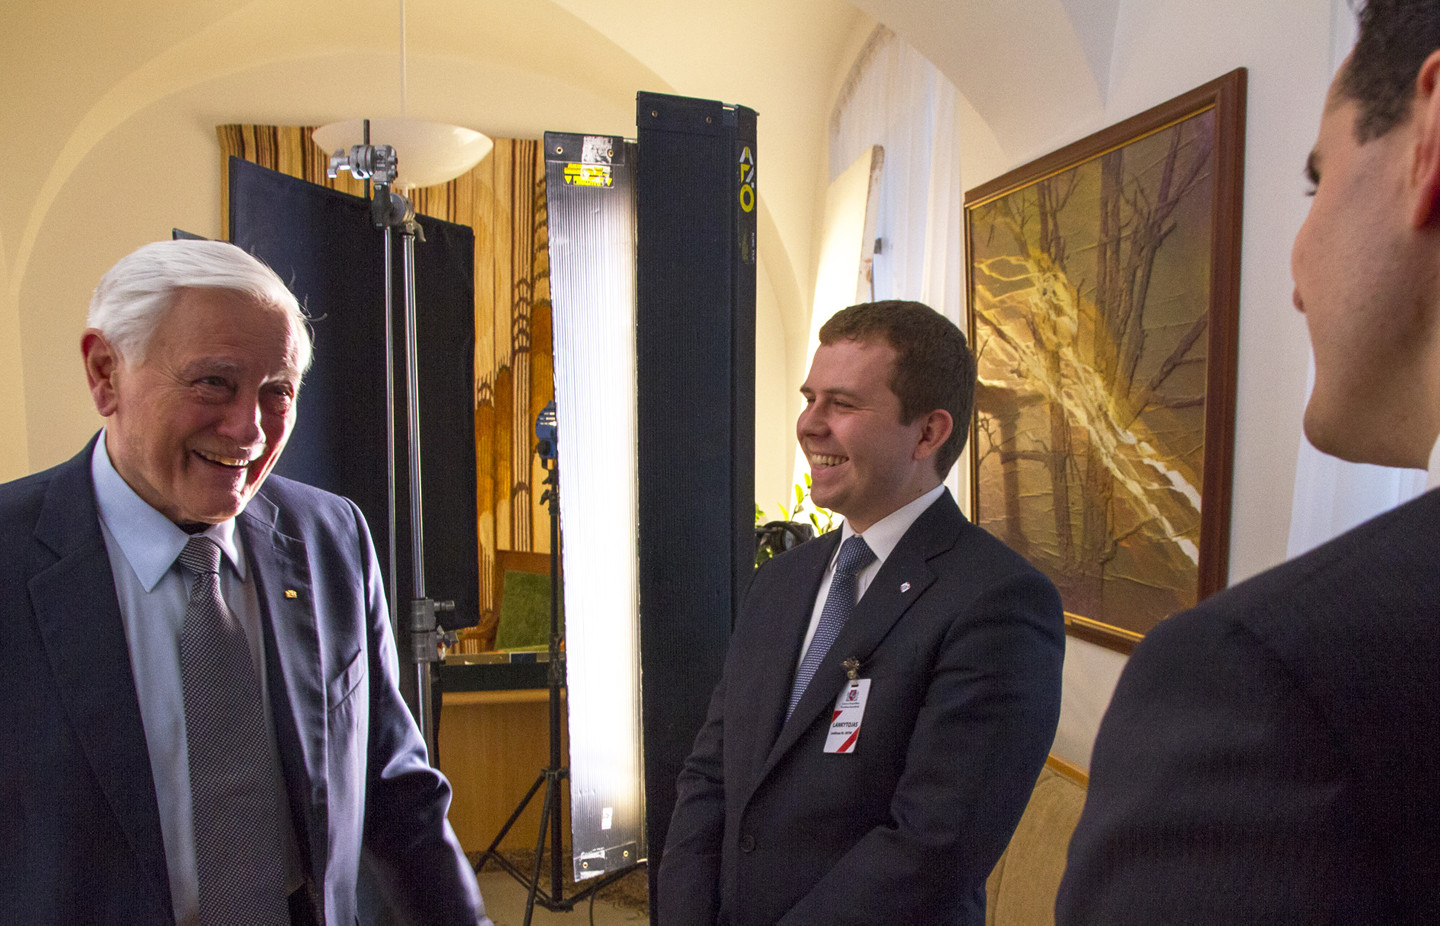 Producers David Naglieri and Szymon Czyszek chat with former Lithuanian President Valdus Adamkus in his office at the Presidential Palace in Vilnius.